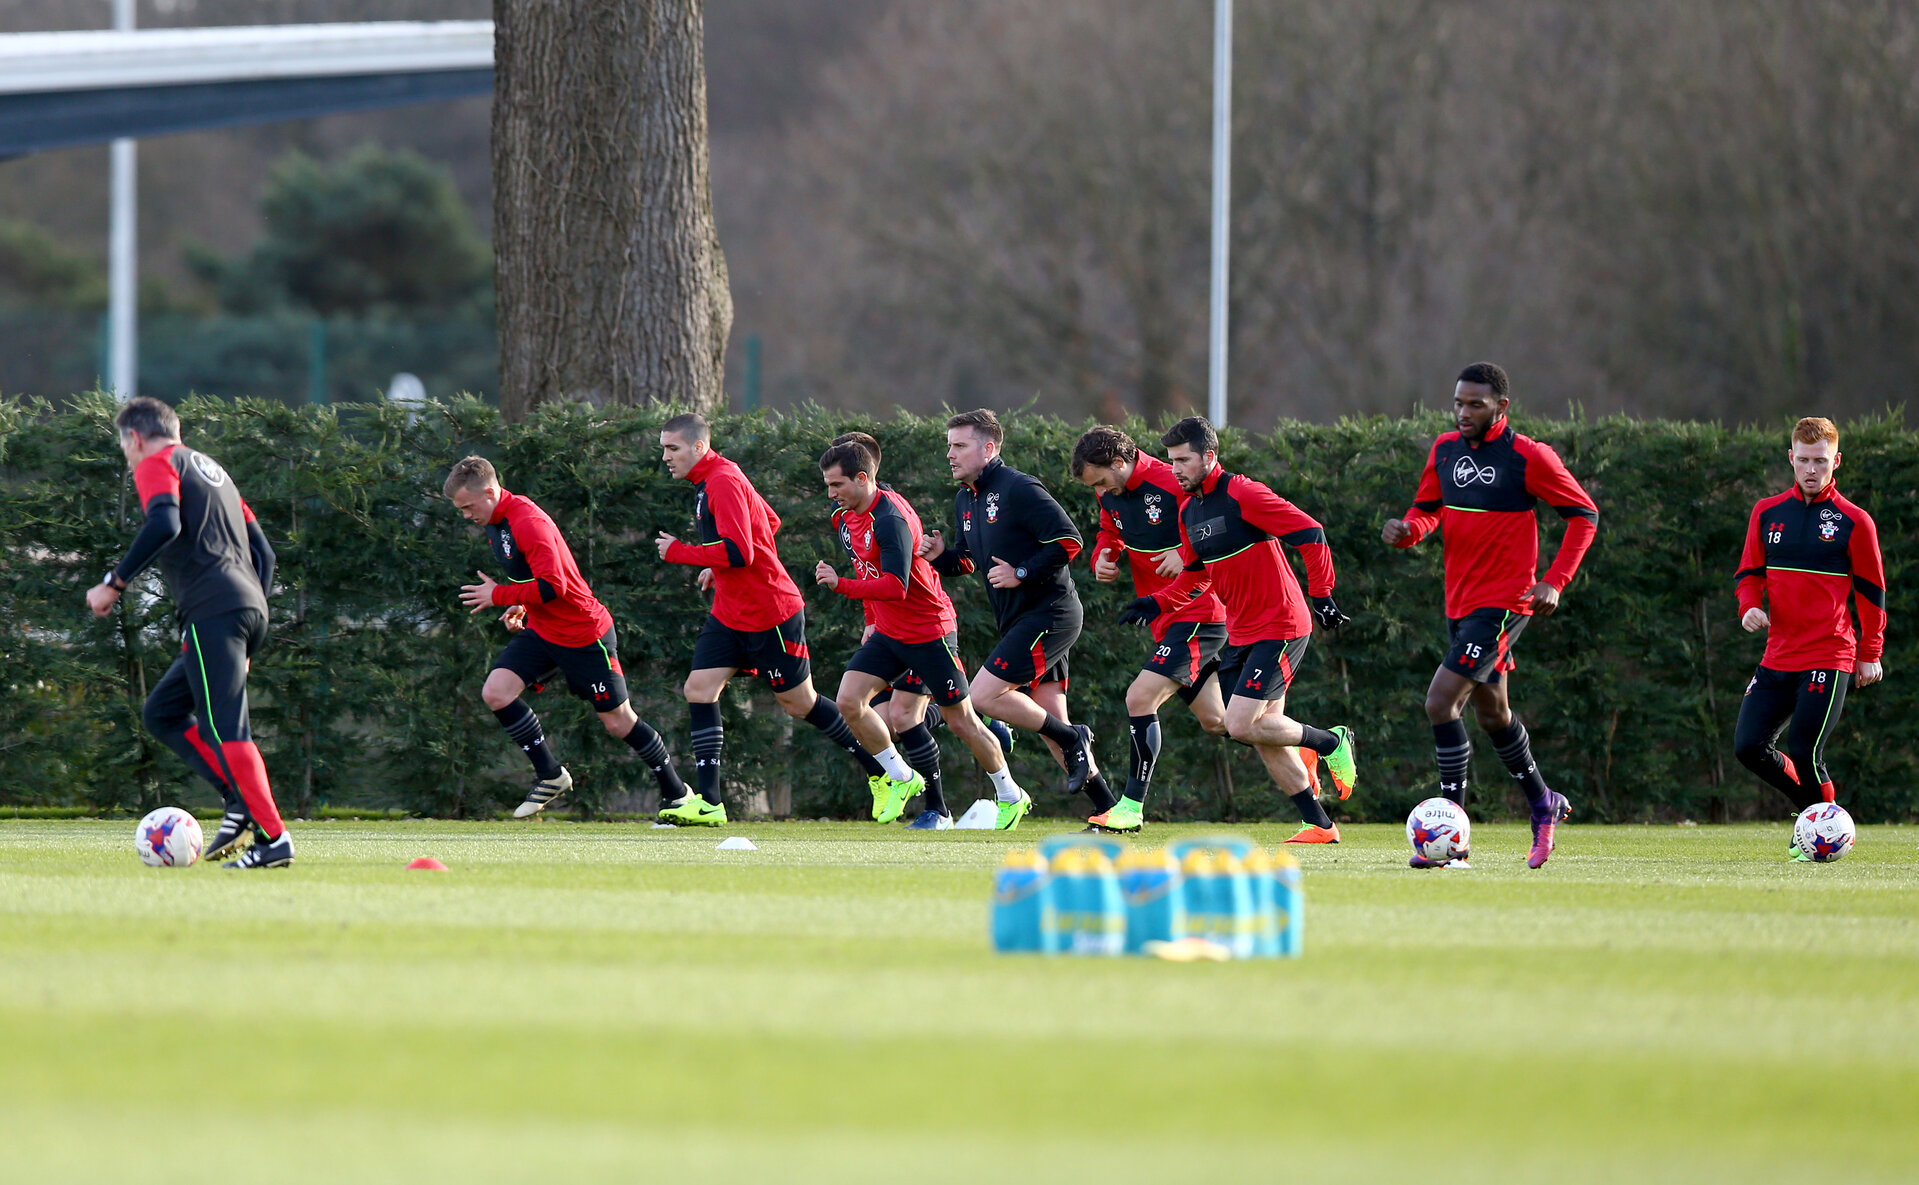 Players take part in a fitness drill during a Southampton FC training session at the Staplewood Campus, Southampton, 16th February 2017